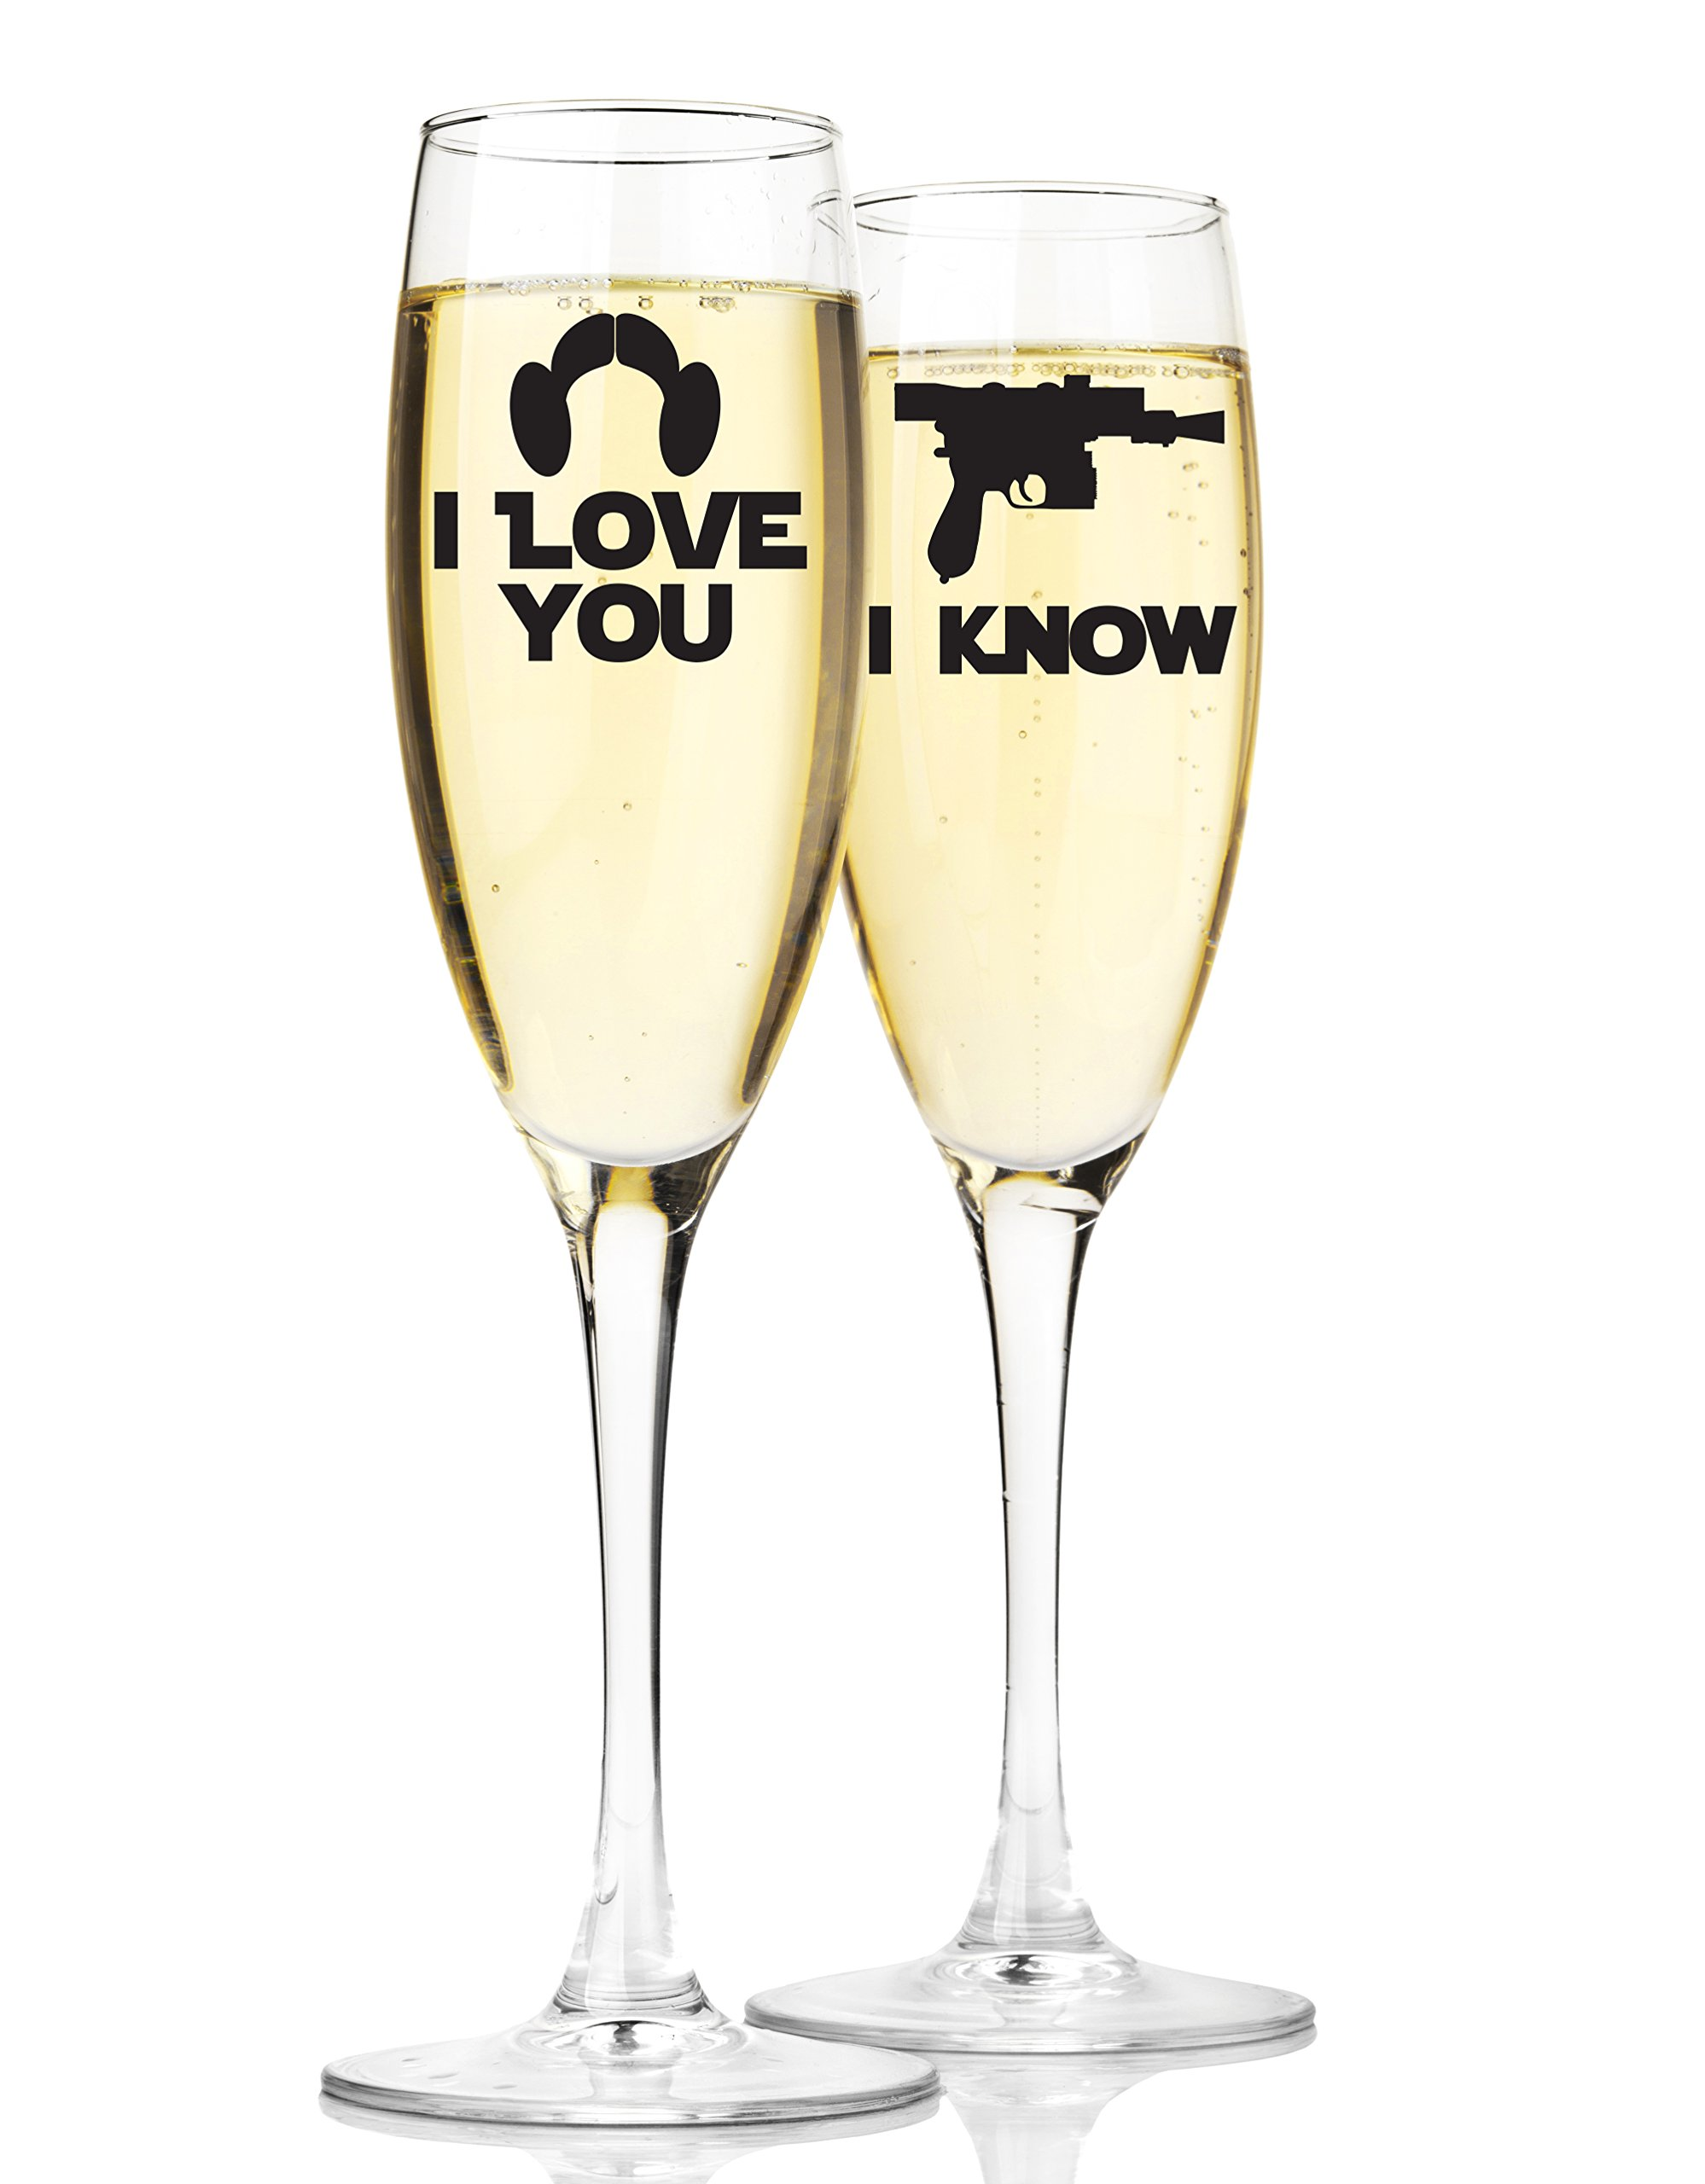 Mr and Mrs Champagne Wedding Flutes Star Wars Inspired I Love You I Know Quote Set of 2 Customized Toasting Flutes Glasses Bride and Groom Gift